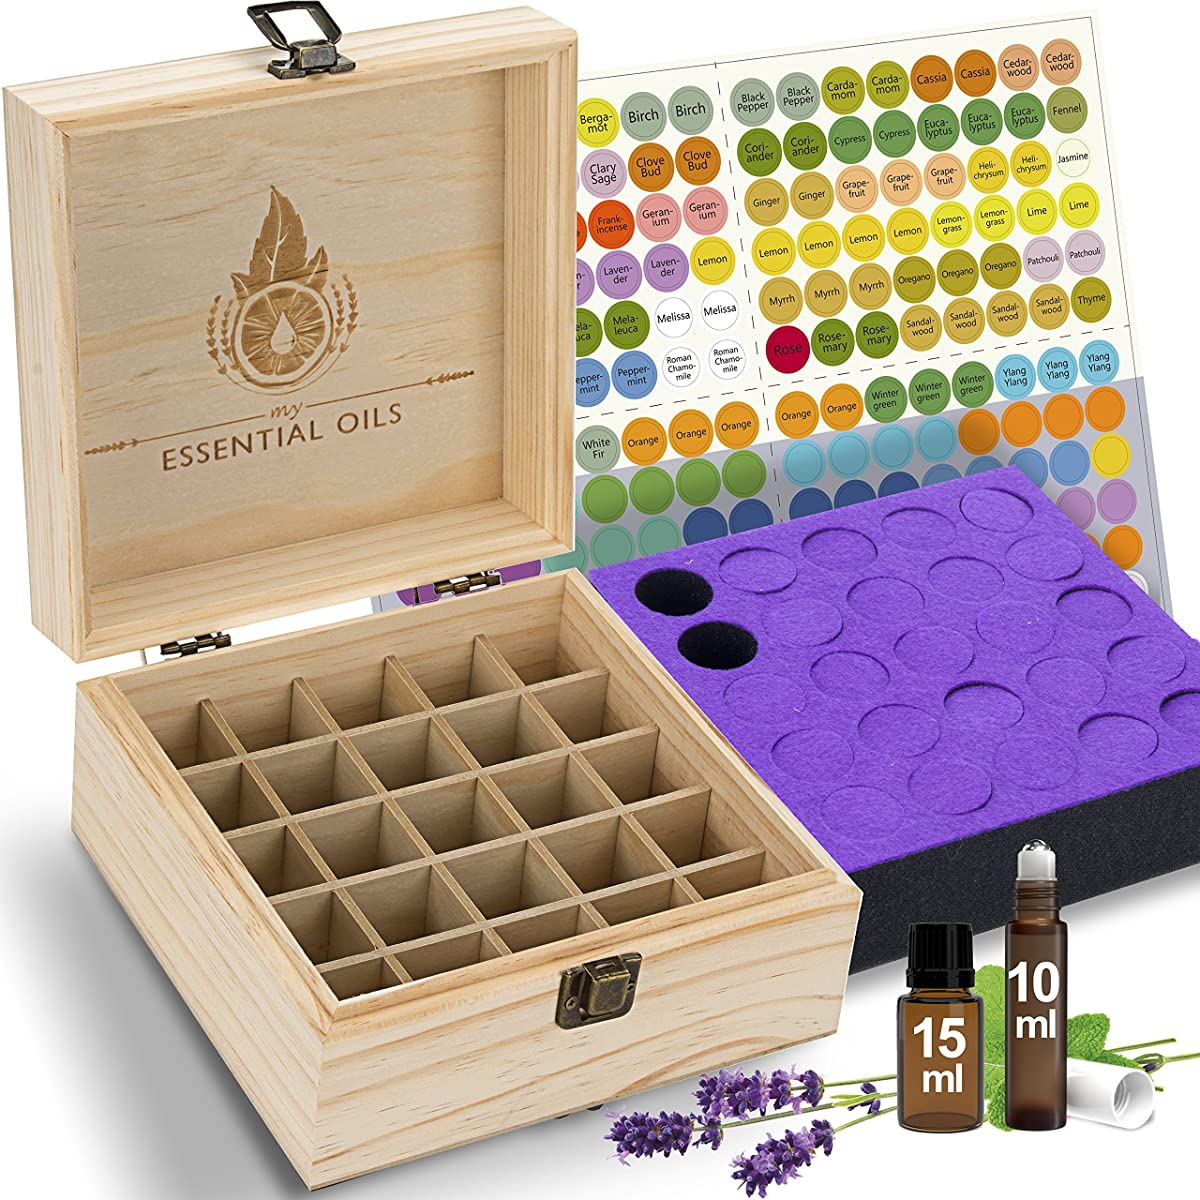 Essential Oil Box Organizer (Holds 25) - Stores Roller Ball Bottles & Other Oils Up To 15mL. Best Starter Wood Storage Case. Thick Foam Insert Secures Oils During Transit. Free EO Labels